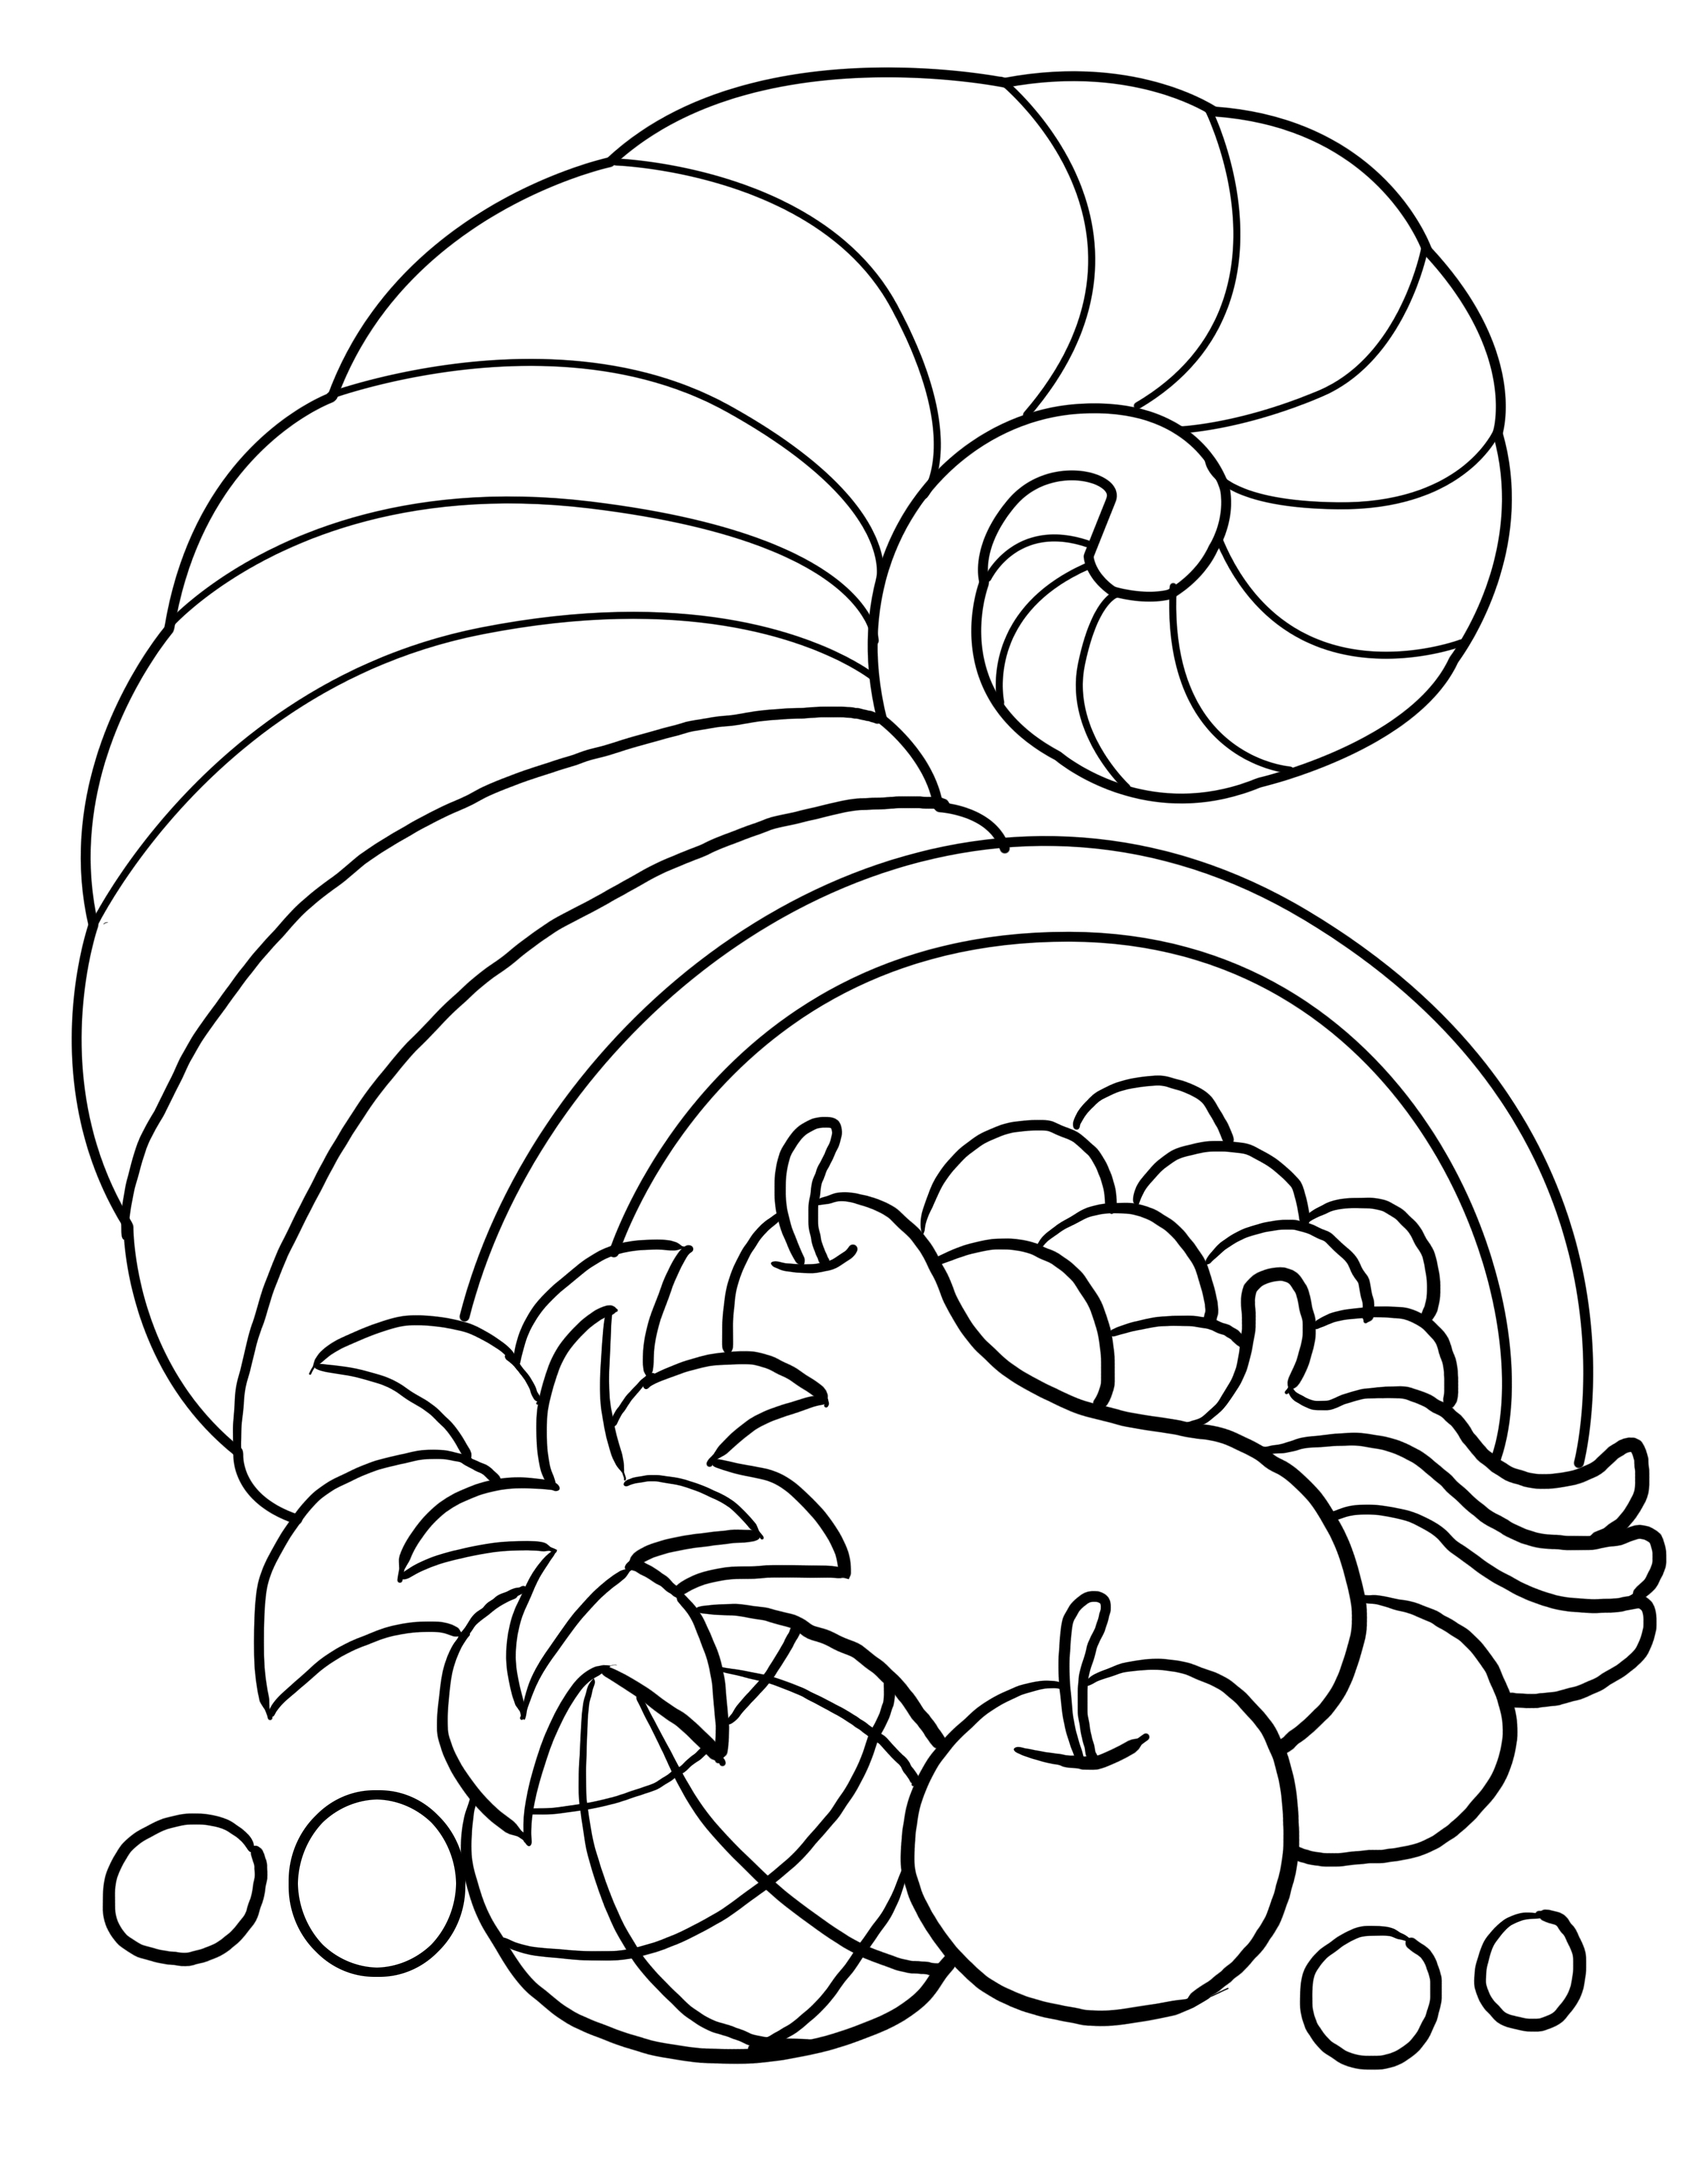 Thanksgiving Coloring Pages For Boys Thanksgiving Coloring Pages